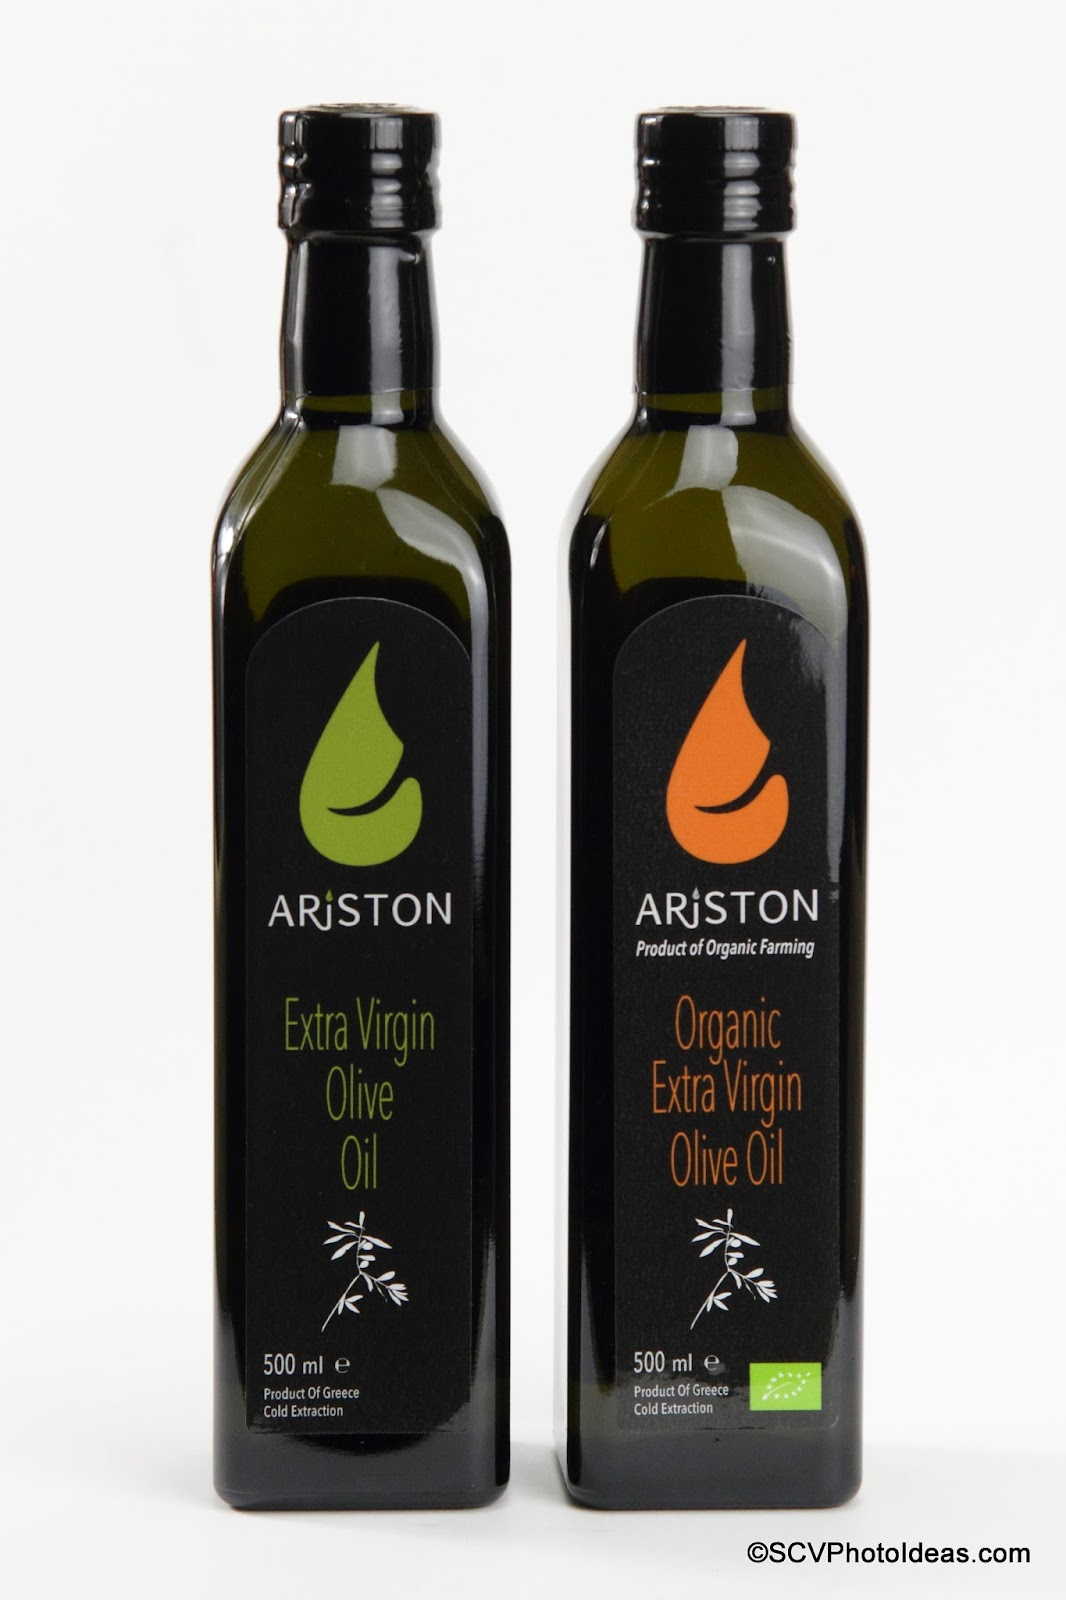 Ariston Extra Virgin Olive Oil & Organic Extra Virgin Olive Oil front -aside